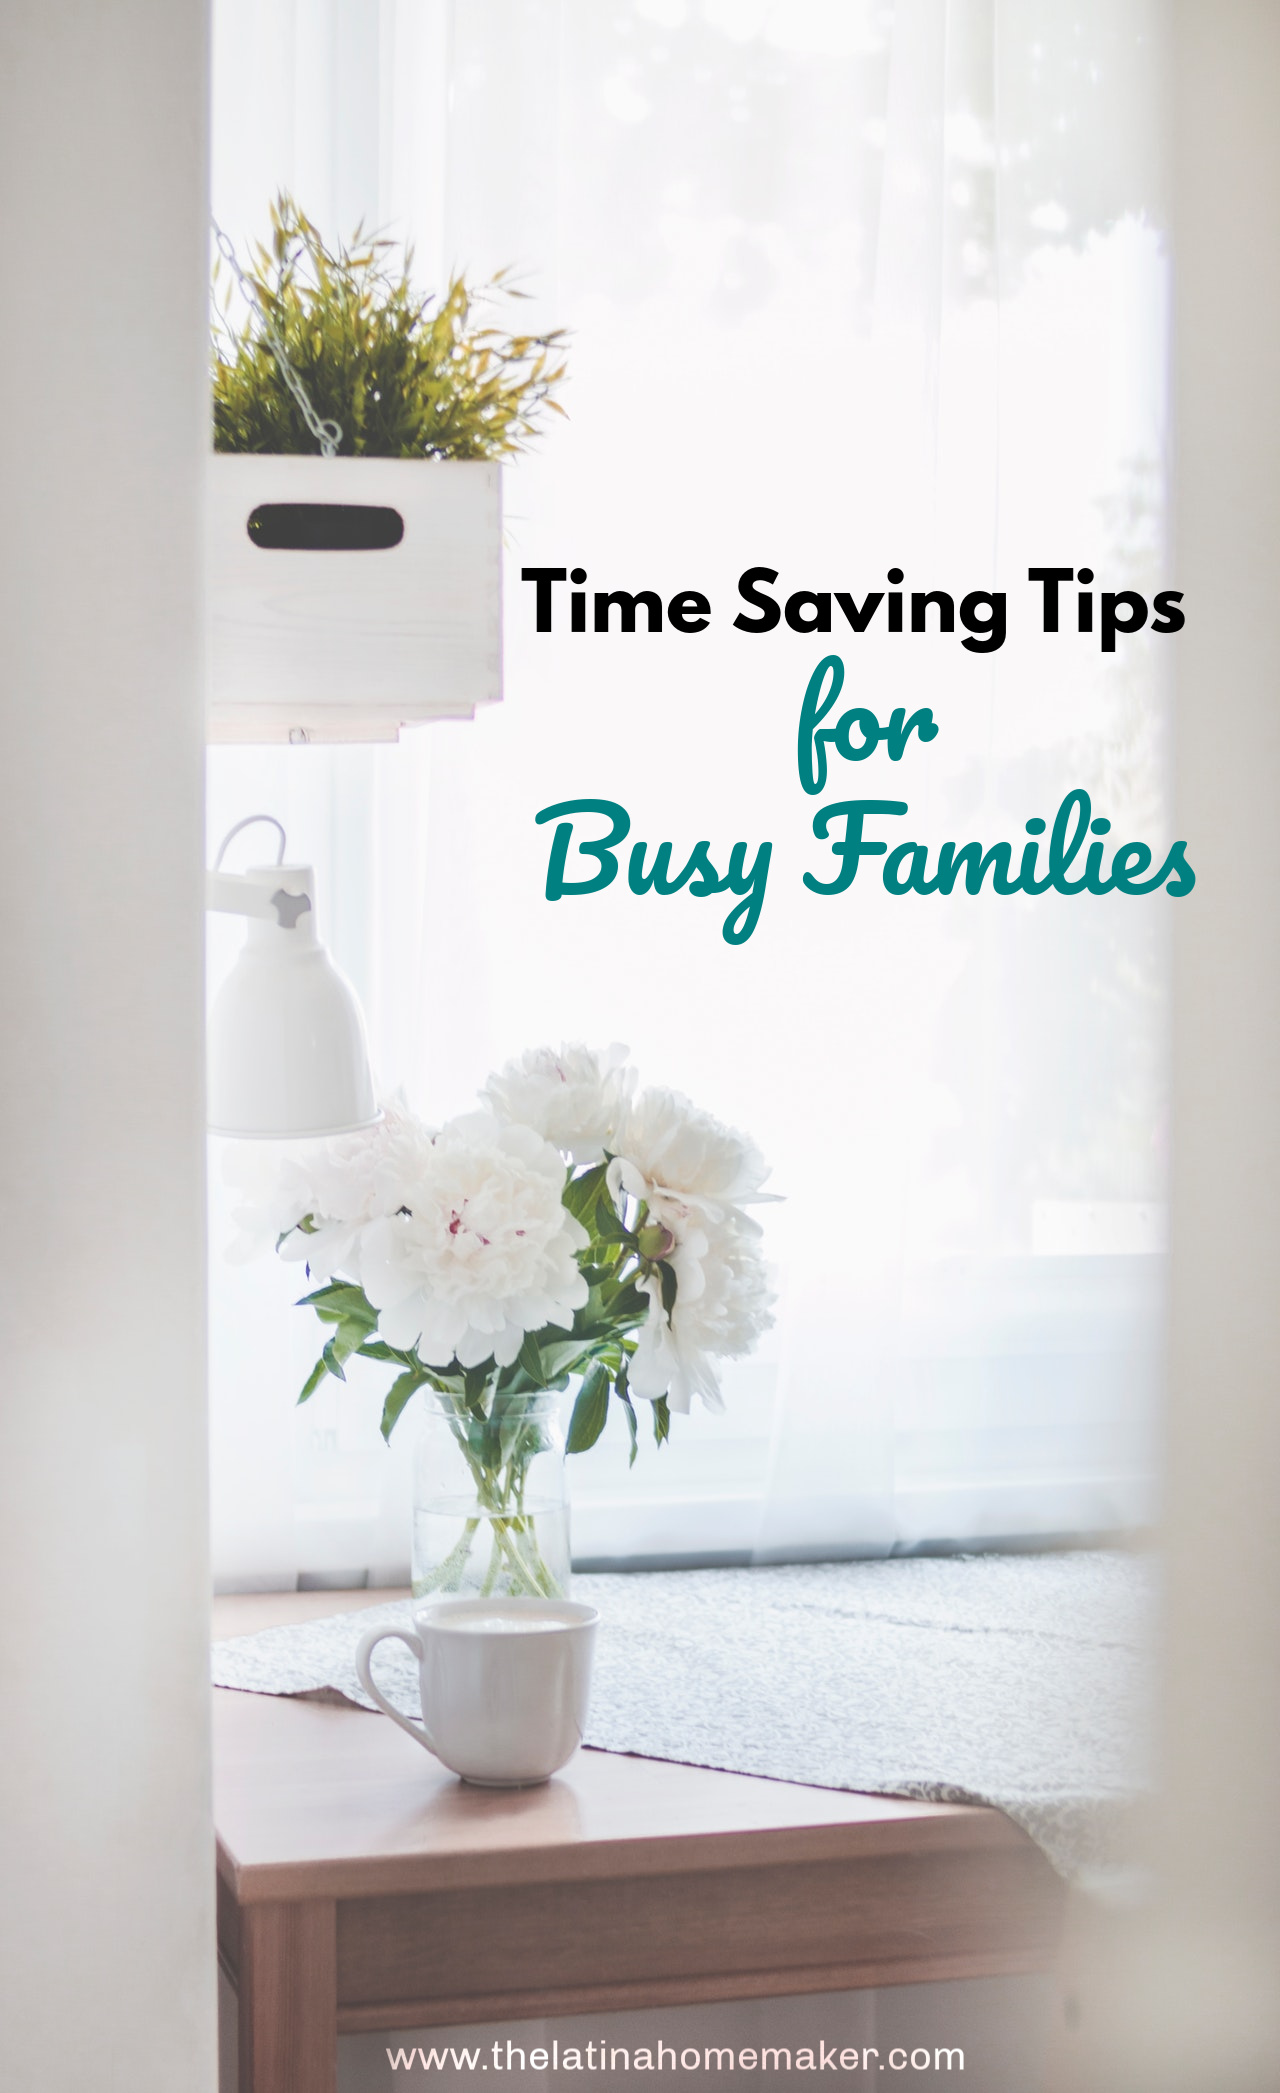 Time saving tips for families that are currently in a busy season and find themselves overwhelmed.